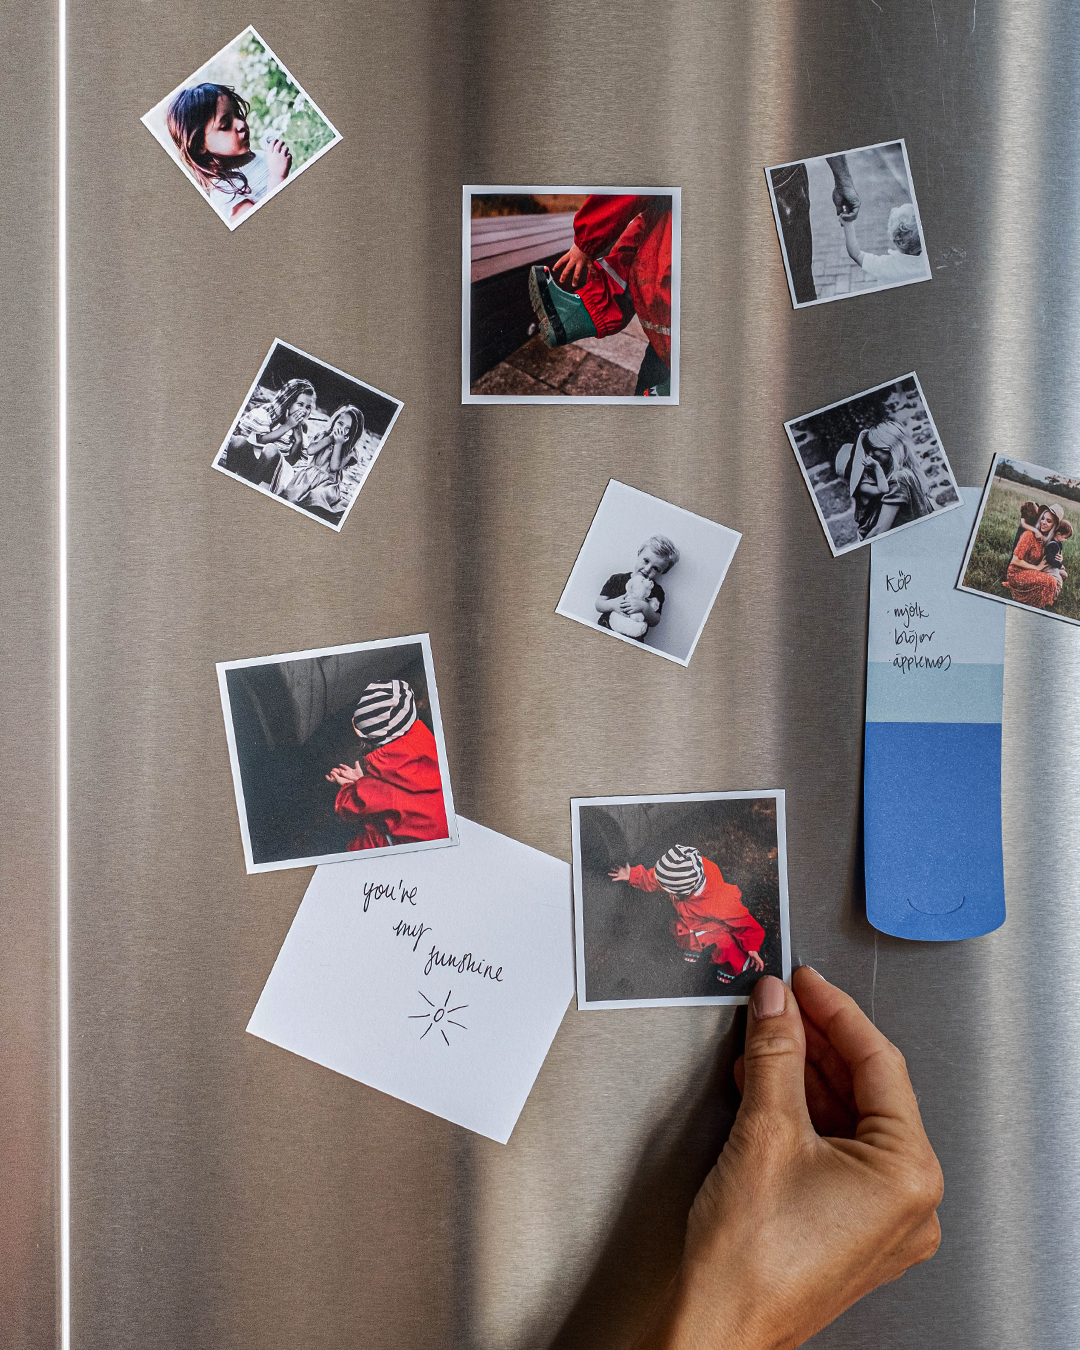 Brighten up your fridge with both memories and lovable notes. For yourself and all the people you love at home.